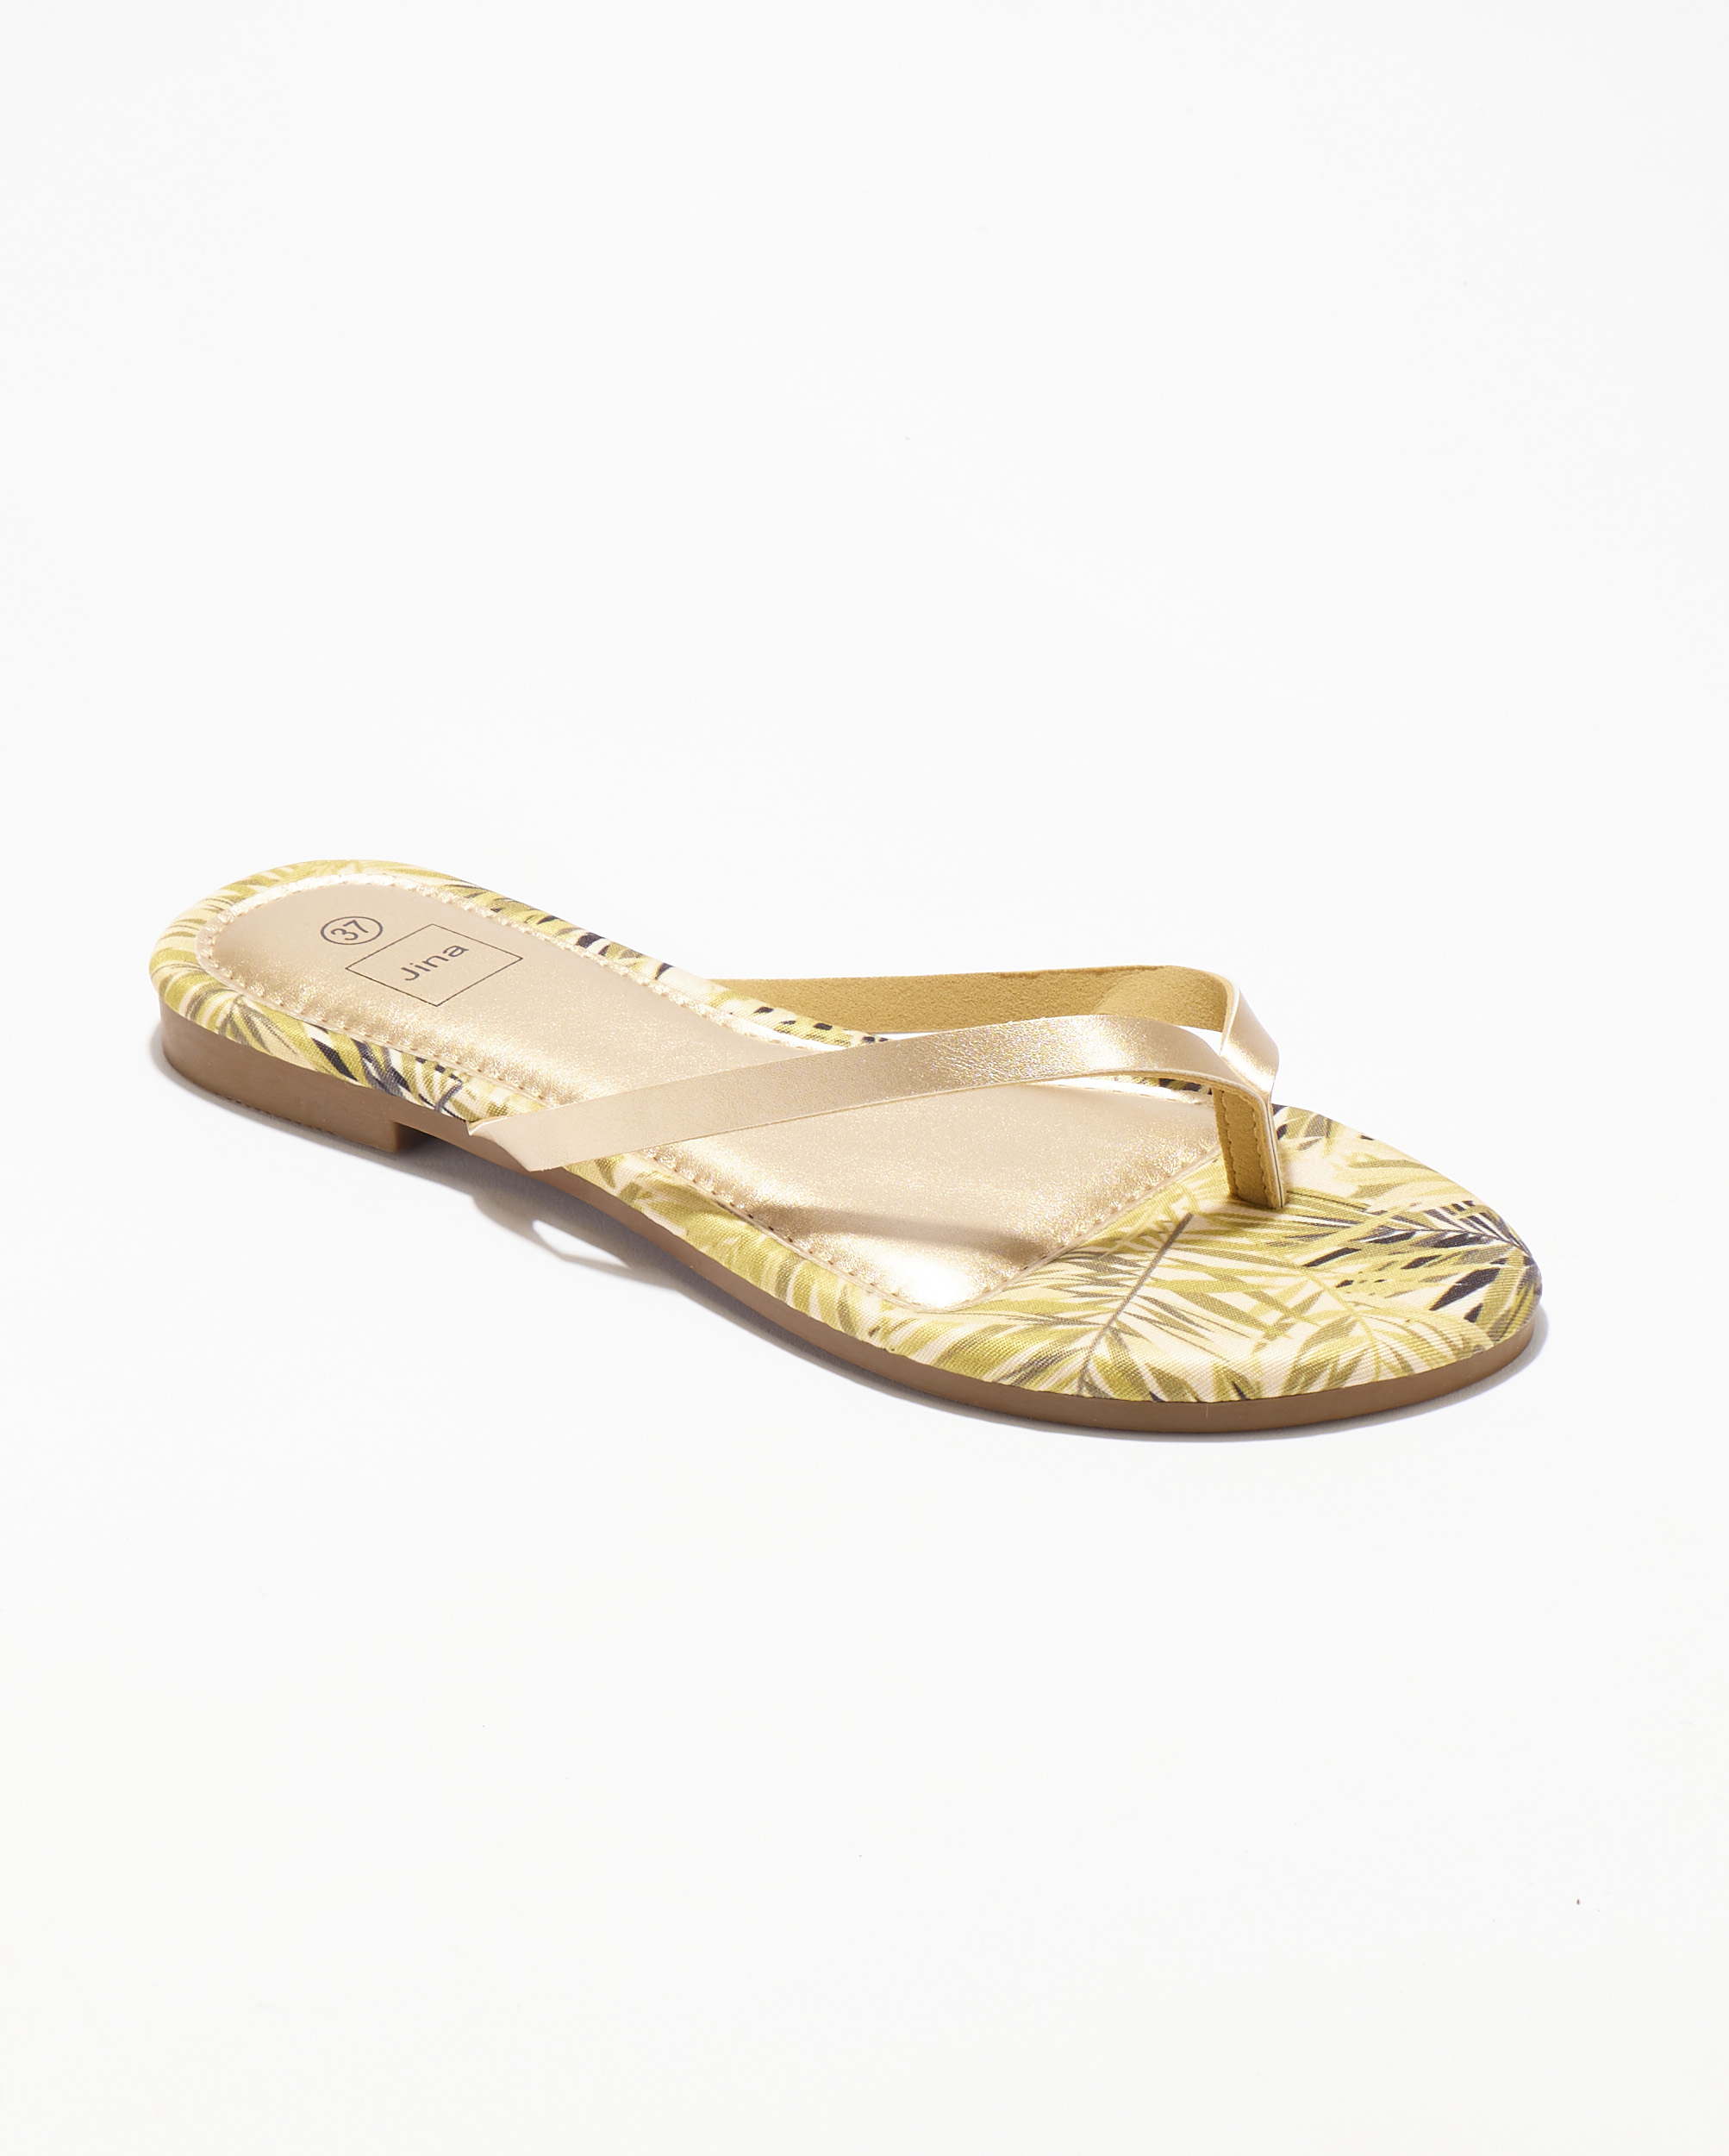 Mules Femme - Mule Plate Or Jina - Style 5 Zh 2021